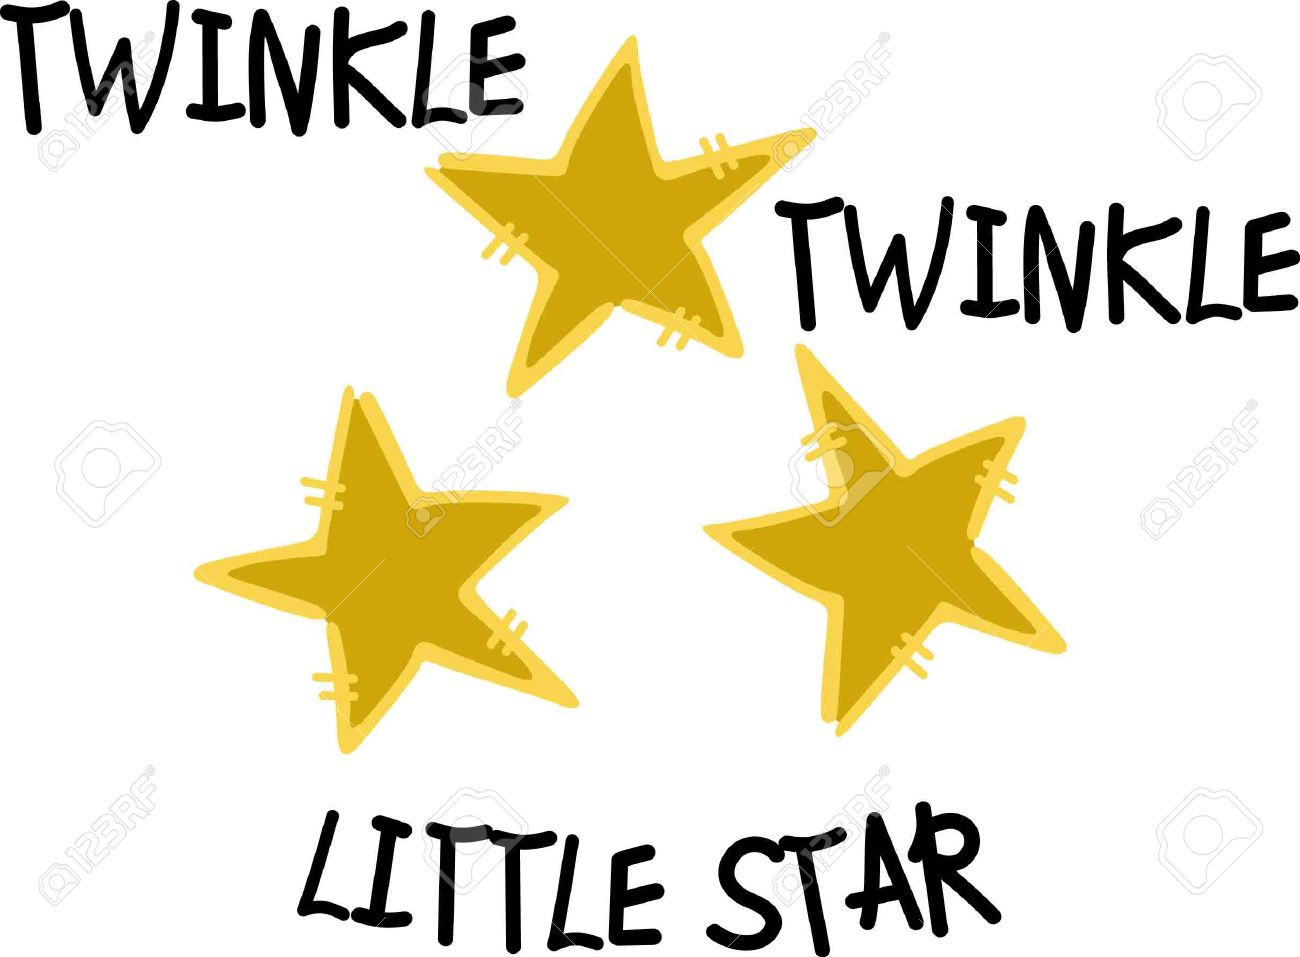 Twinkle twinkle little star clipart 2 » Clipart Station.